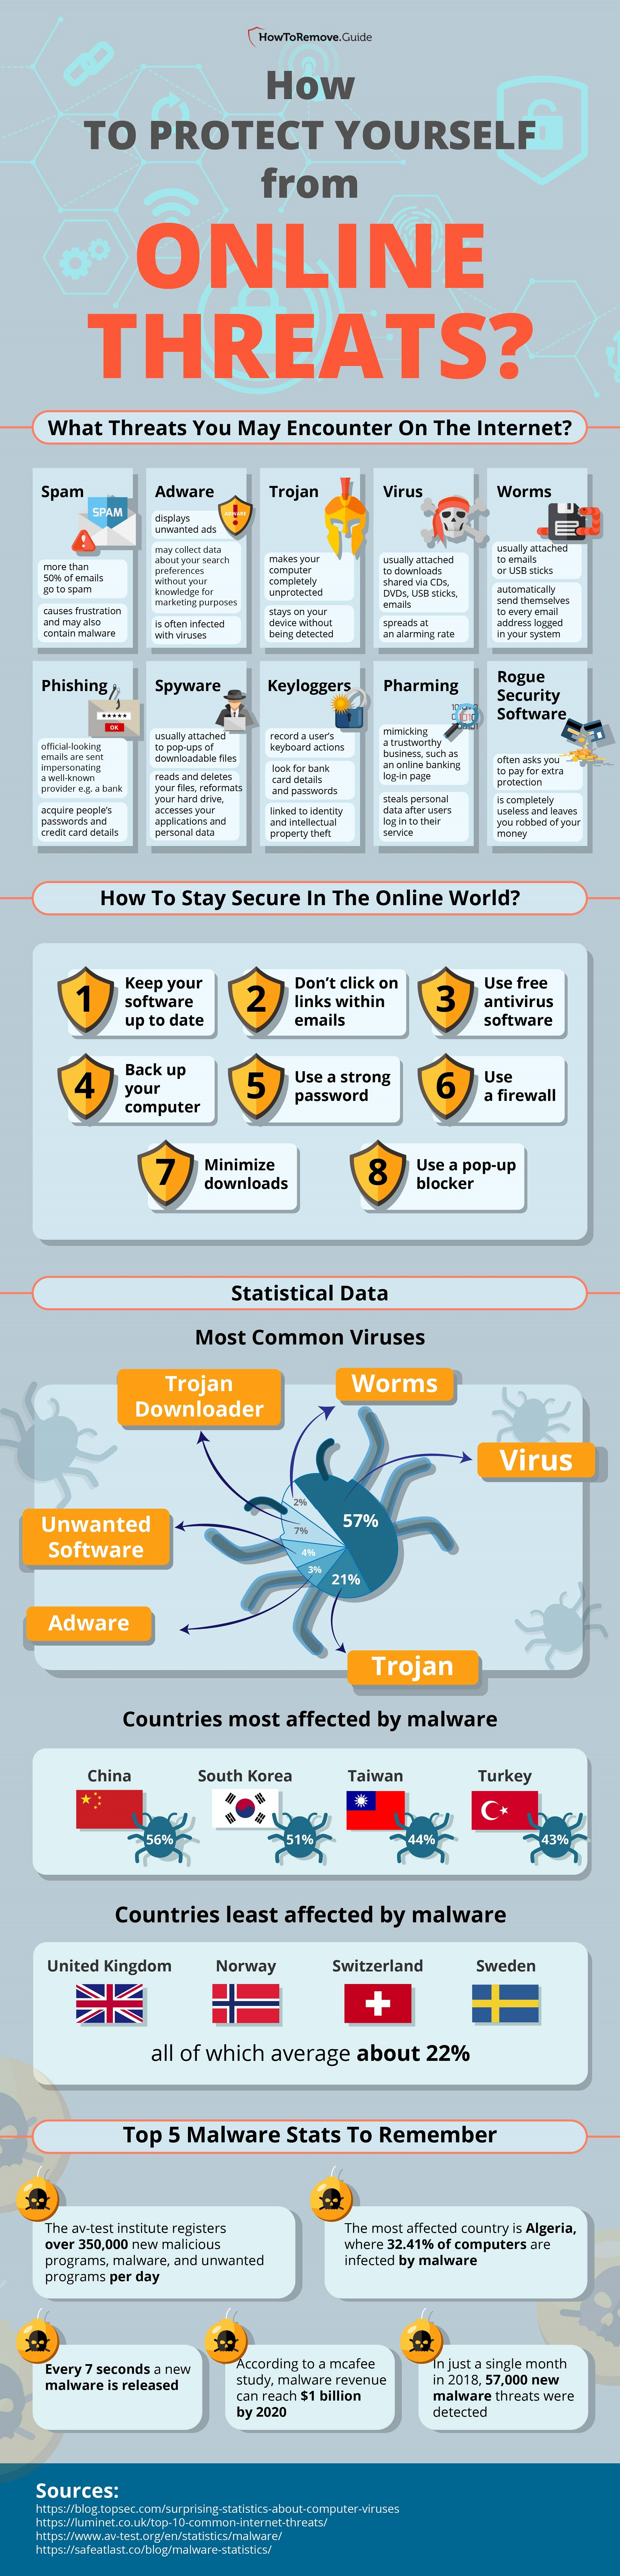 The Most Common Types of Viruses Affecting Your Computer